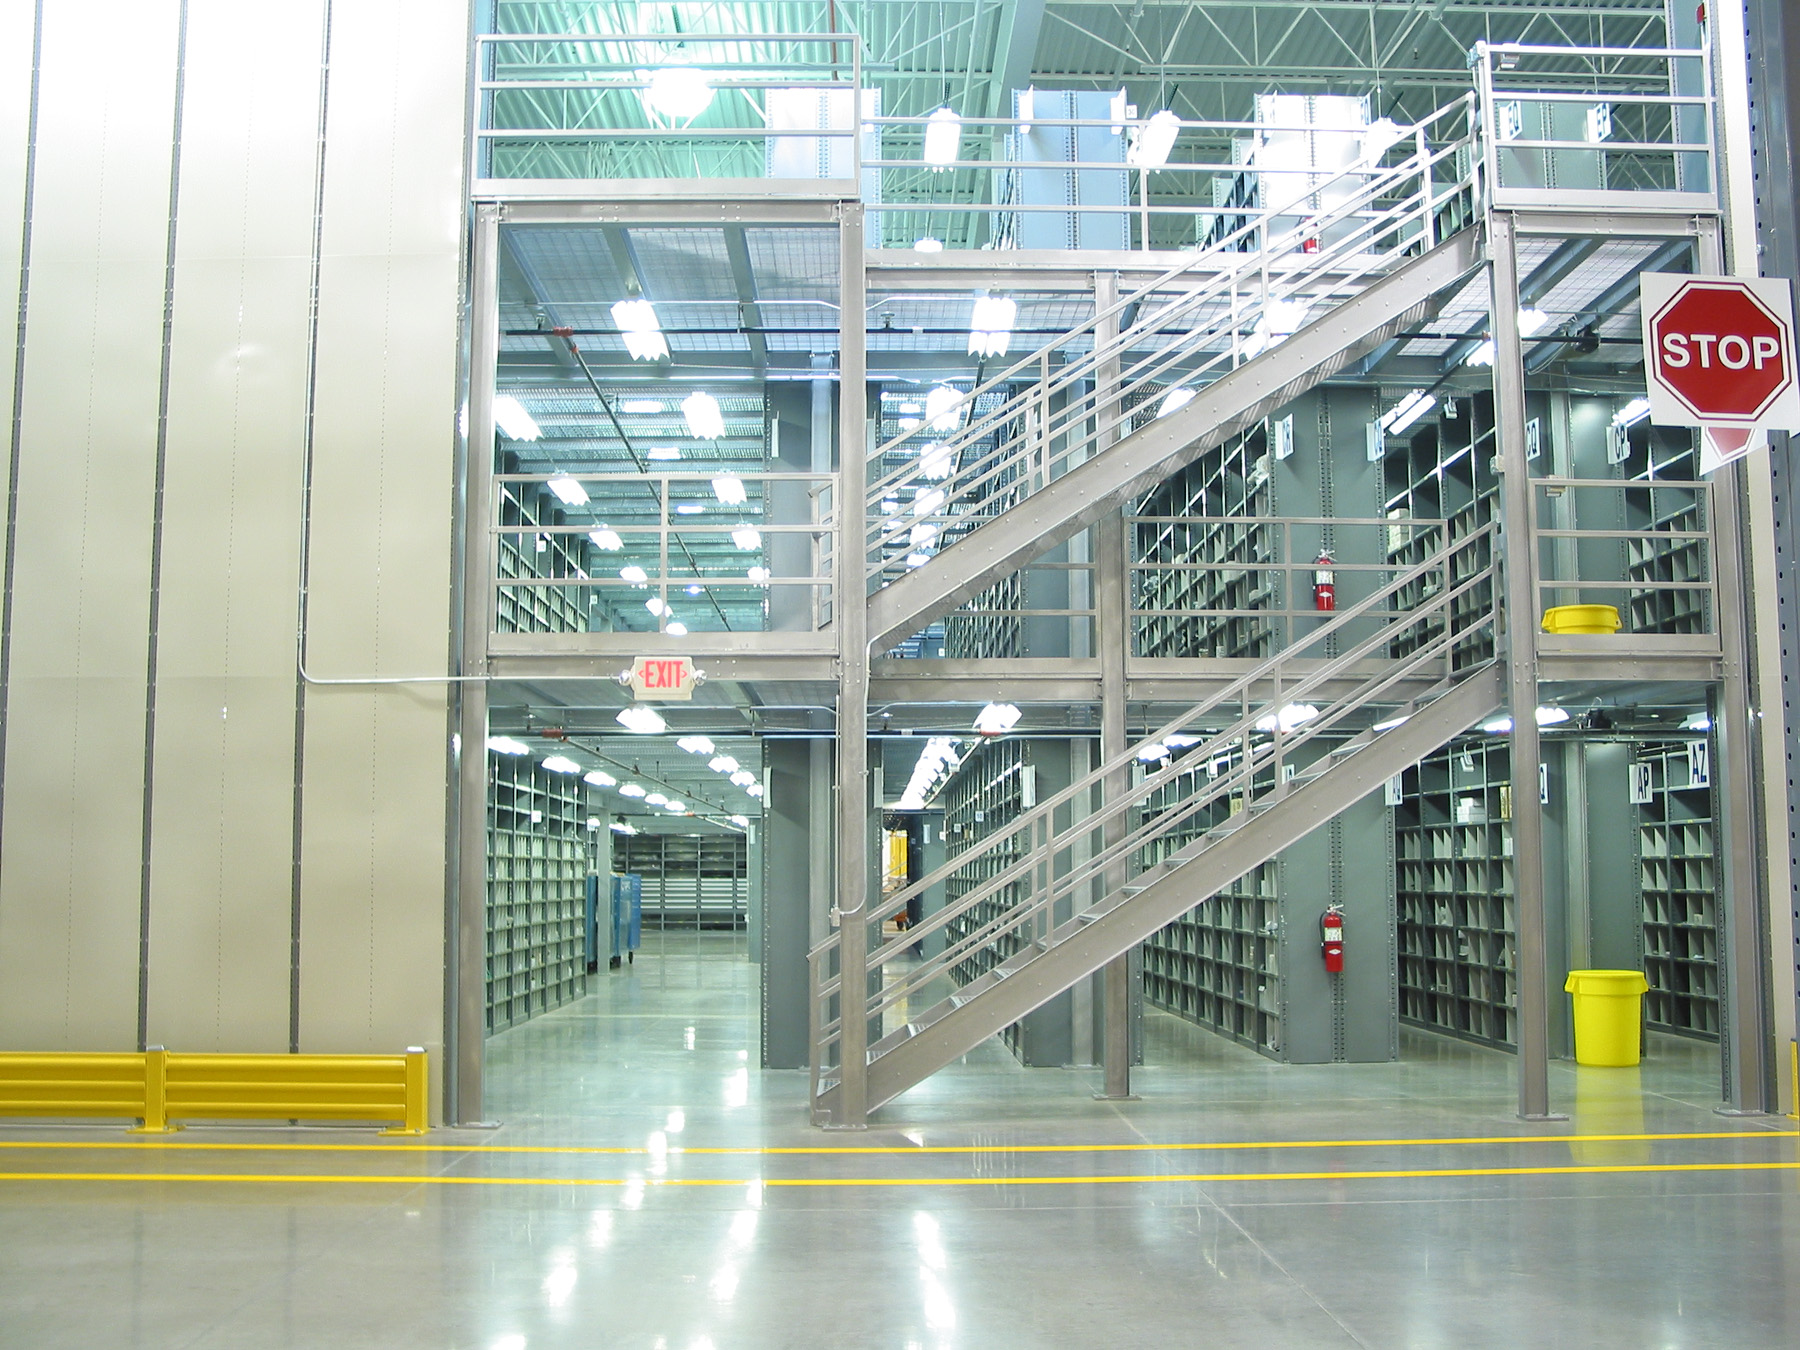 Secure Mezzanines - Increase Storage Capacity Fast. Fast Warehouse Space Maker